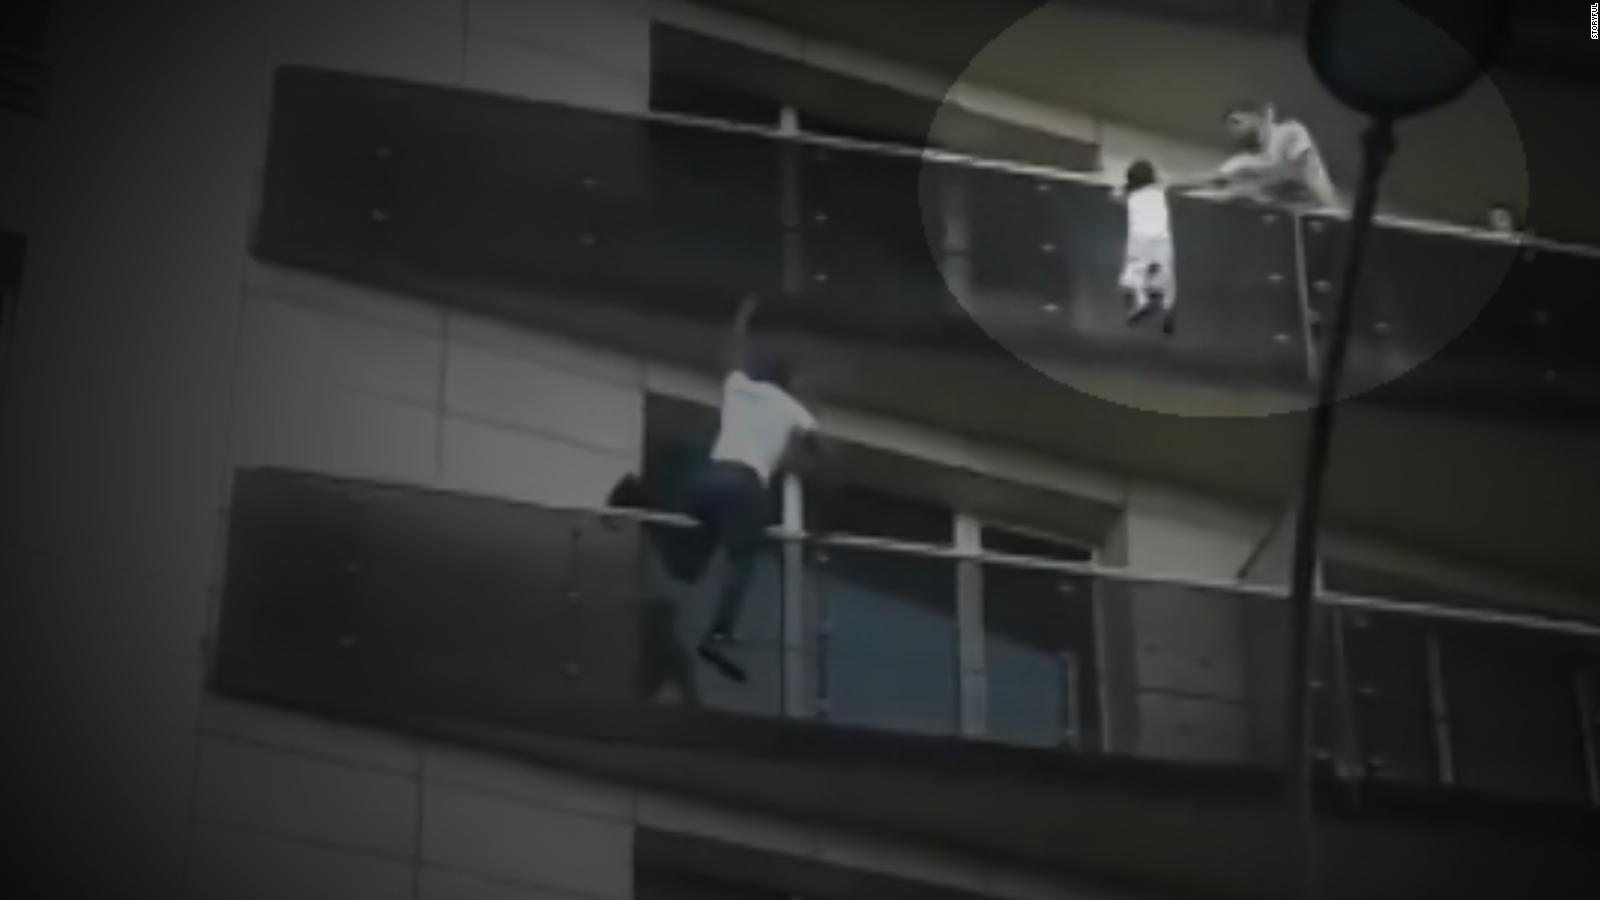 Man scales building to save dangling child - CNN Video